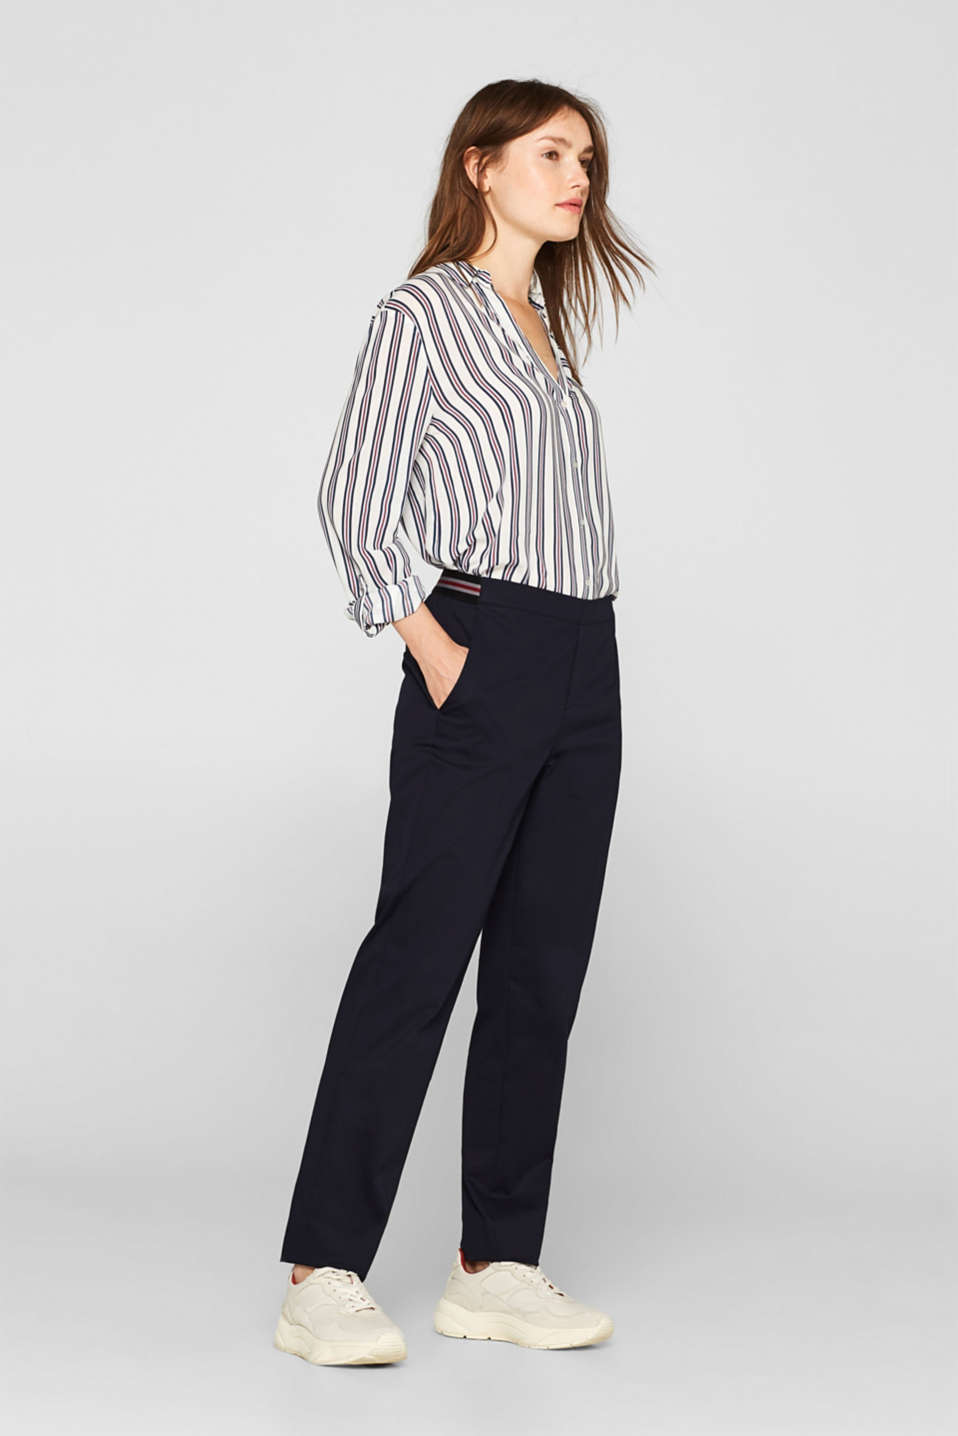 Esprit - Stretch trousers with striped elasticated waistband